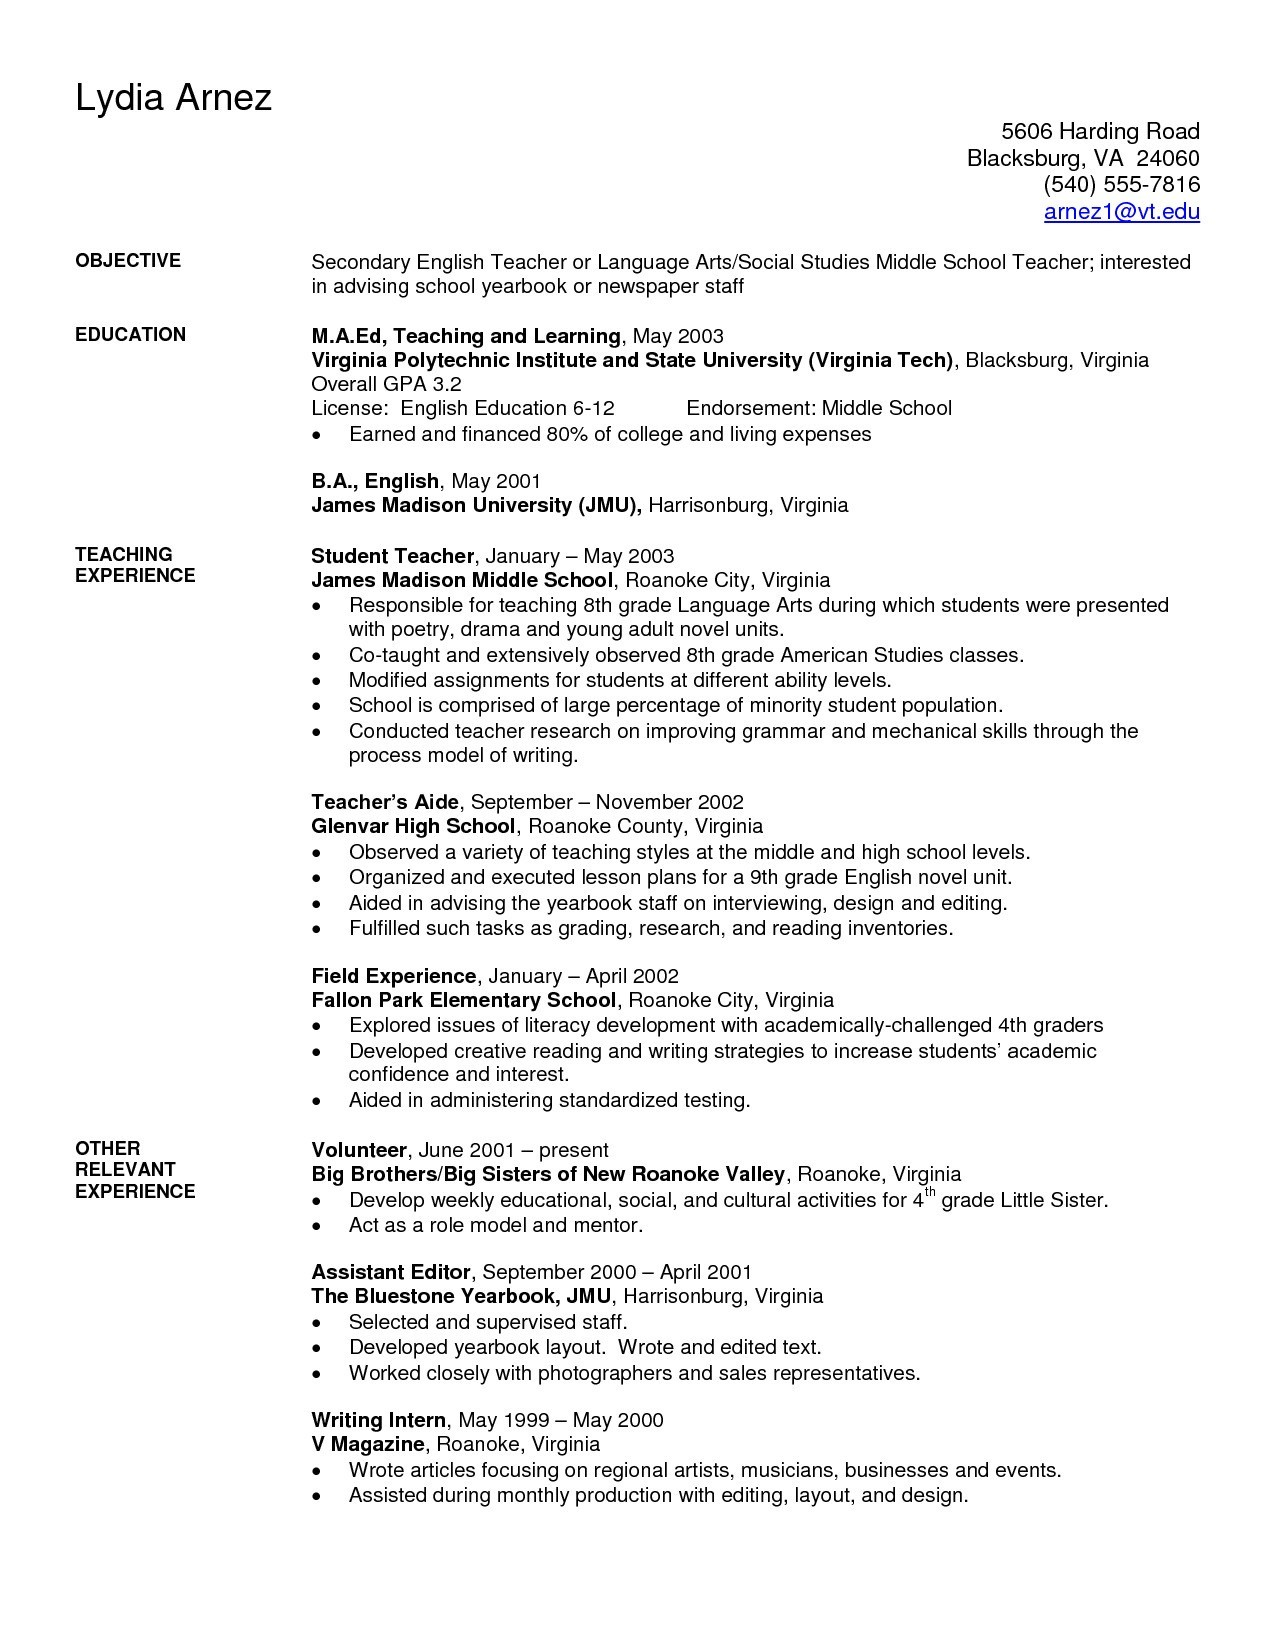 Resume Template for Teacher assistant - Teaching Resume Examples Fresh Elegant Resume for Highschool